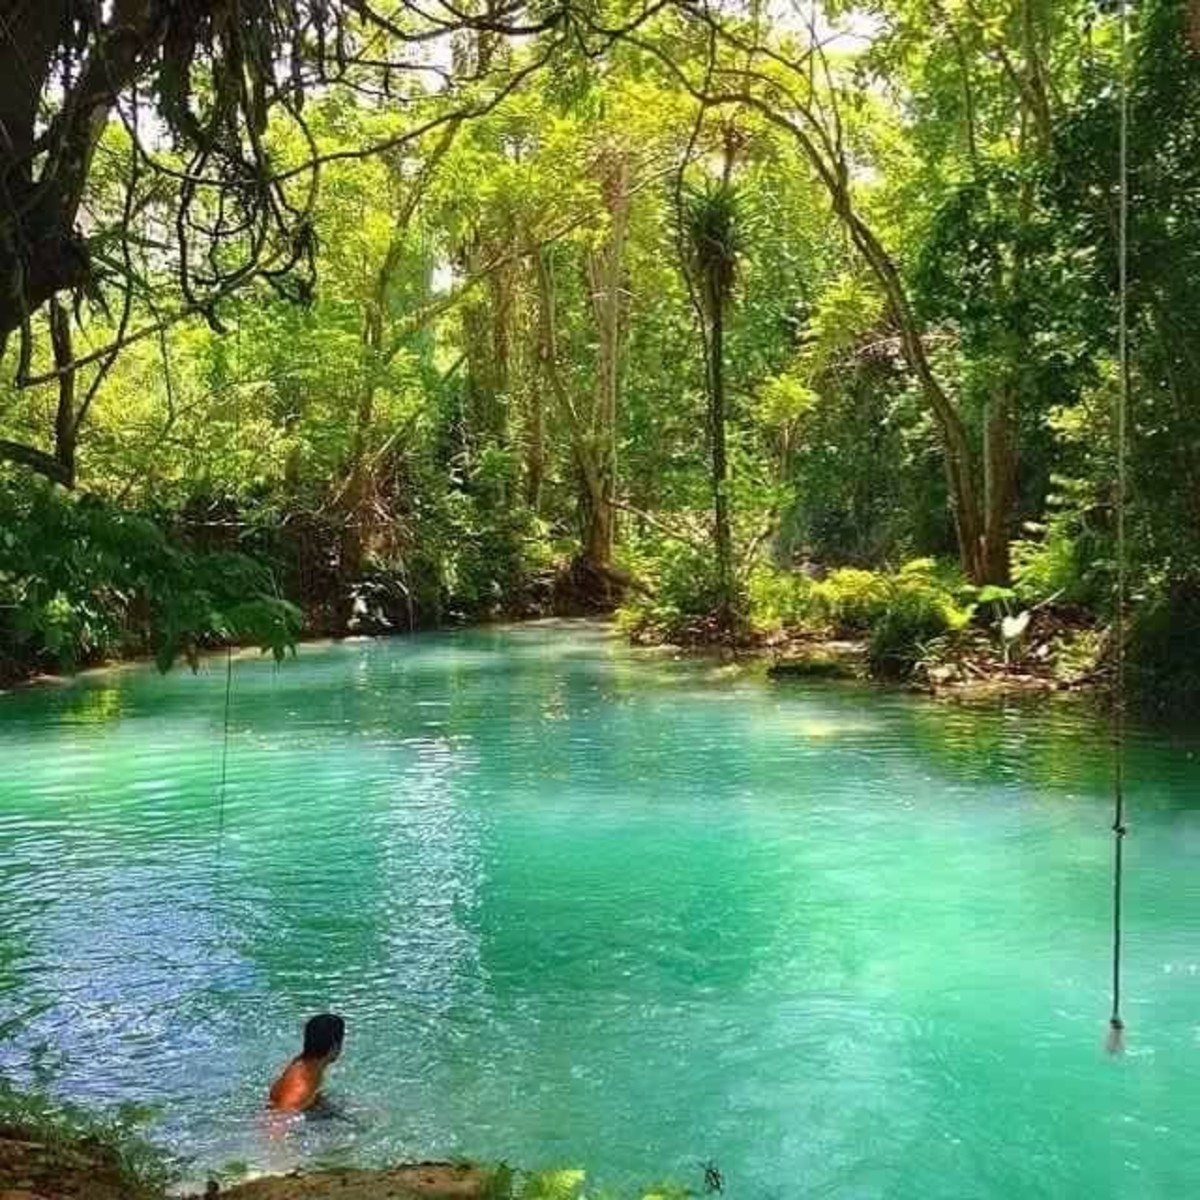 This jungle surrounded river flows into the beach at Frenchman's Cove for a heavenly experience.